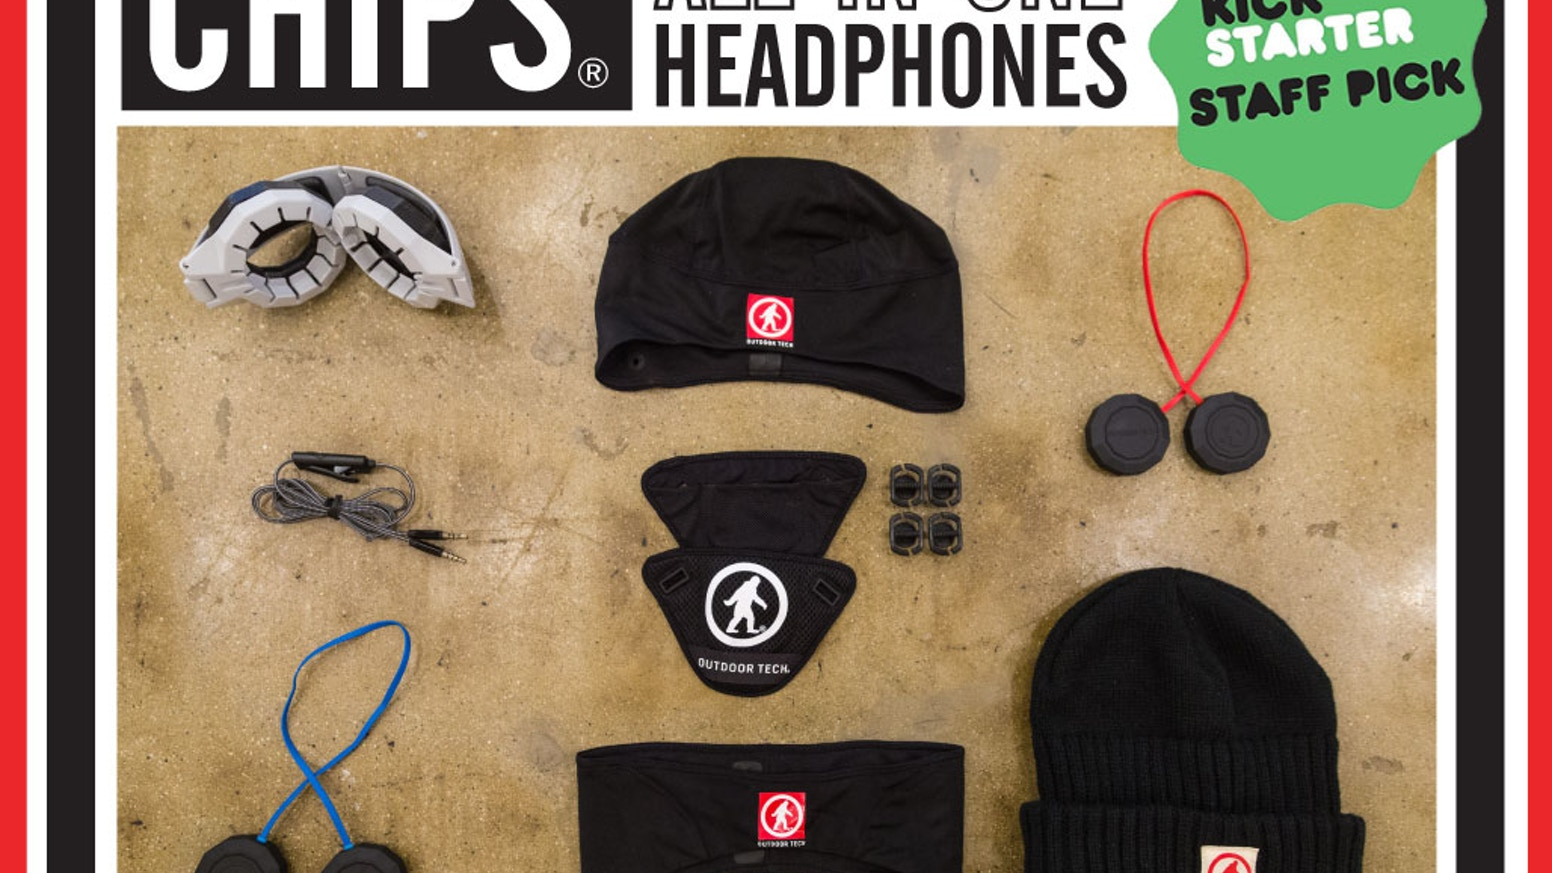 CHIPS®: The Hi-Fi ALL-IN-ONE Headphones that adapt to work with your active lifestyle, no matter what you are up to.